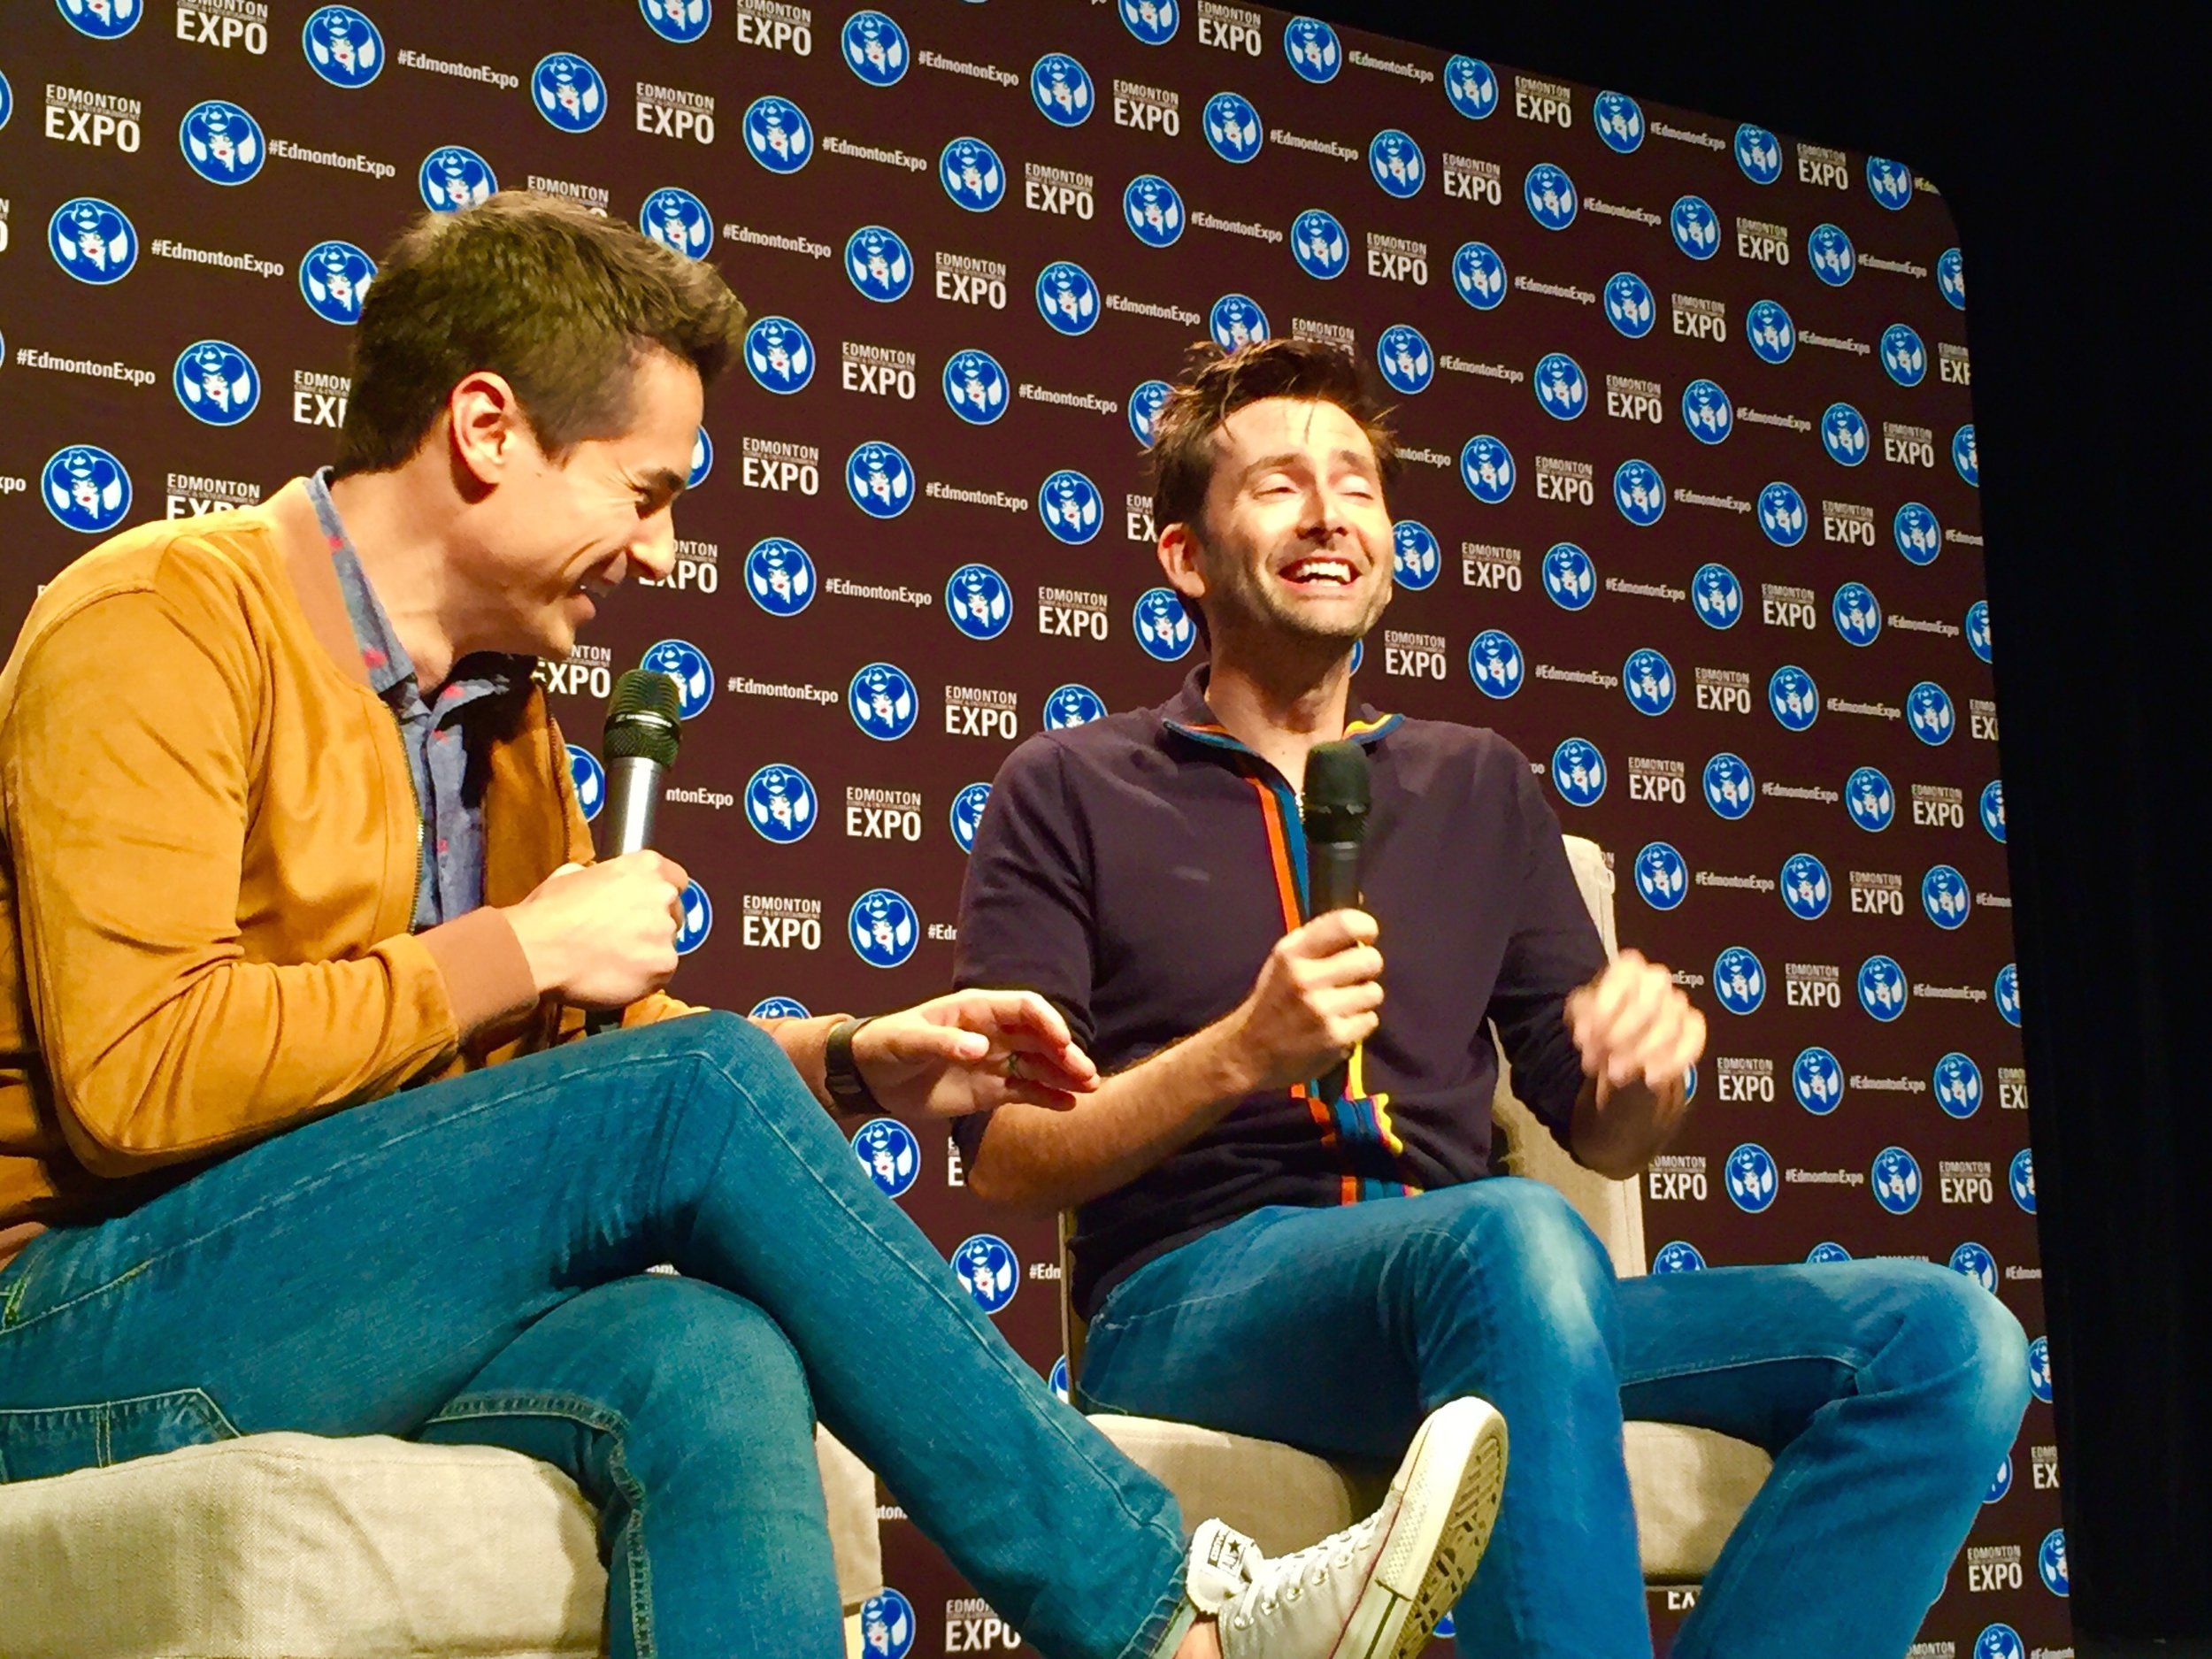 Tanner Zipchen moderating a panel with David Tennant at the 2018 Edmonton Expo.   (Photo credit: Charles Cousins for GeekNerdNet.com)